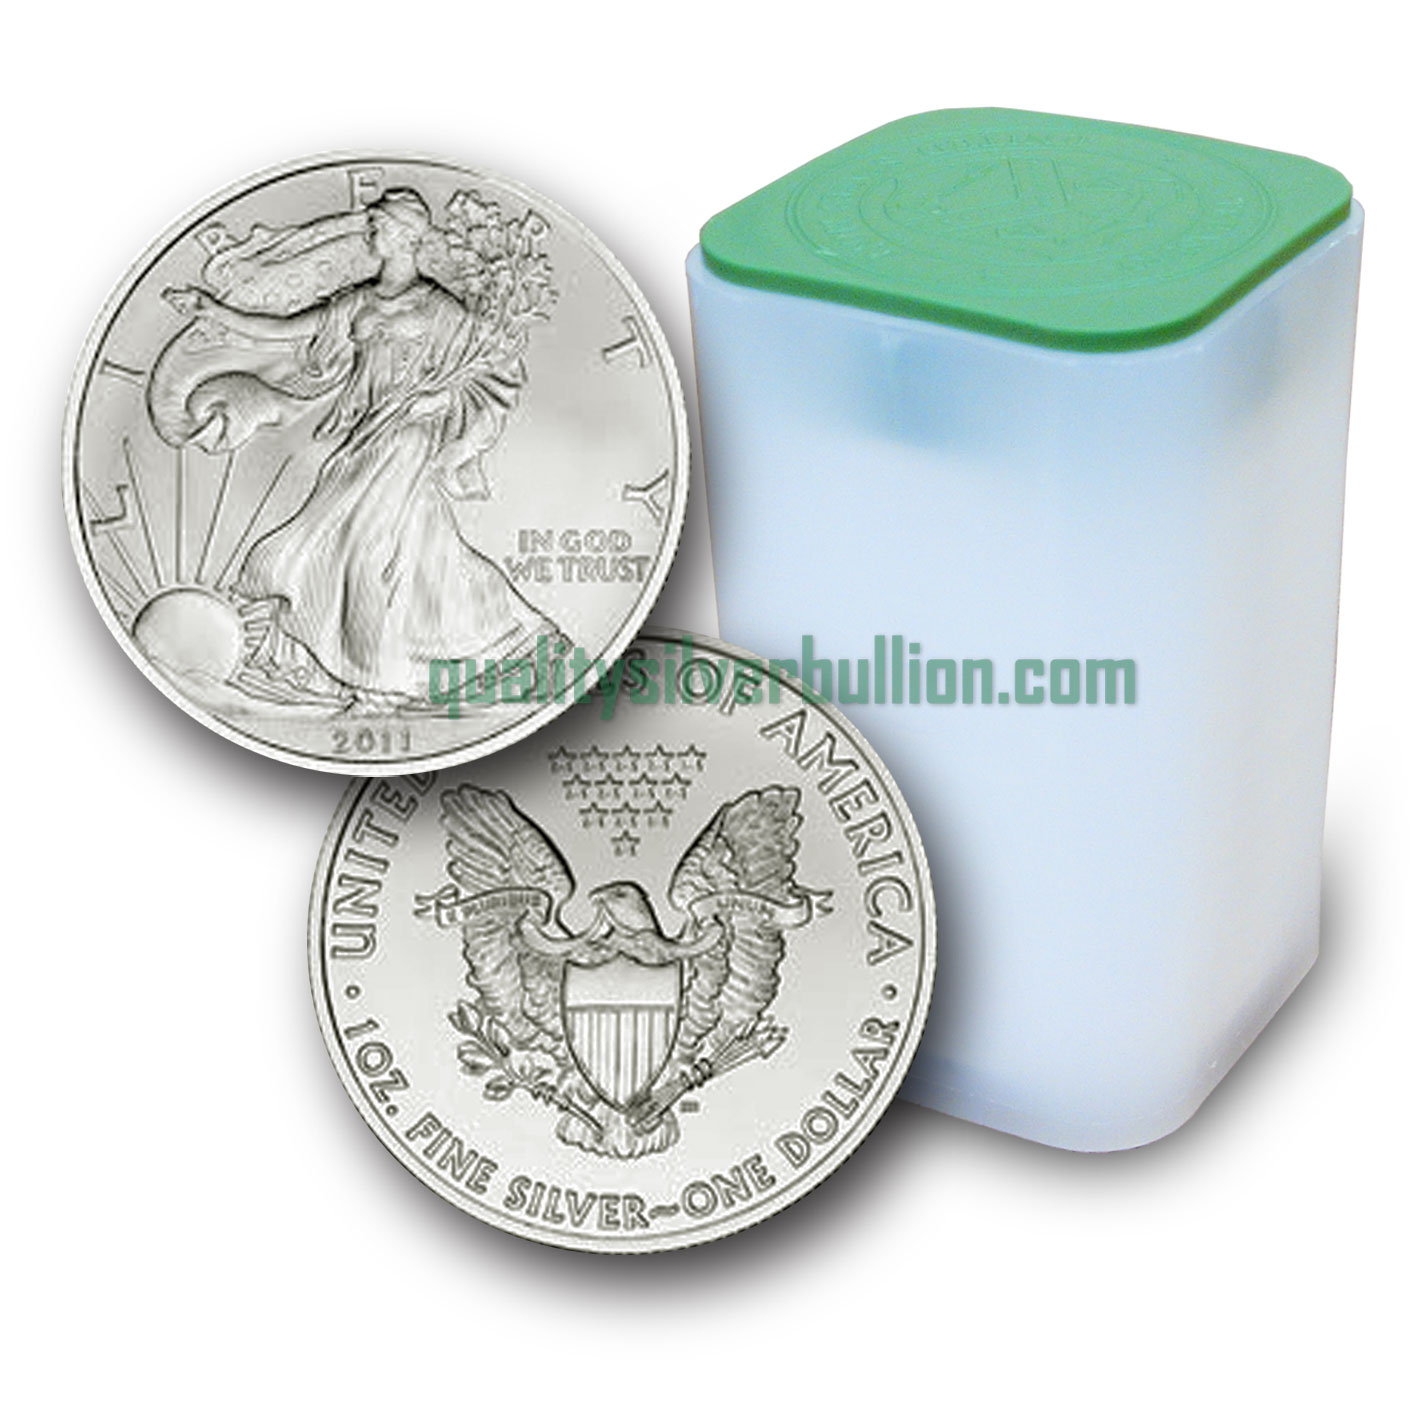 Where to buy silver - What Is The Best Silver Bullion To Buy